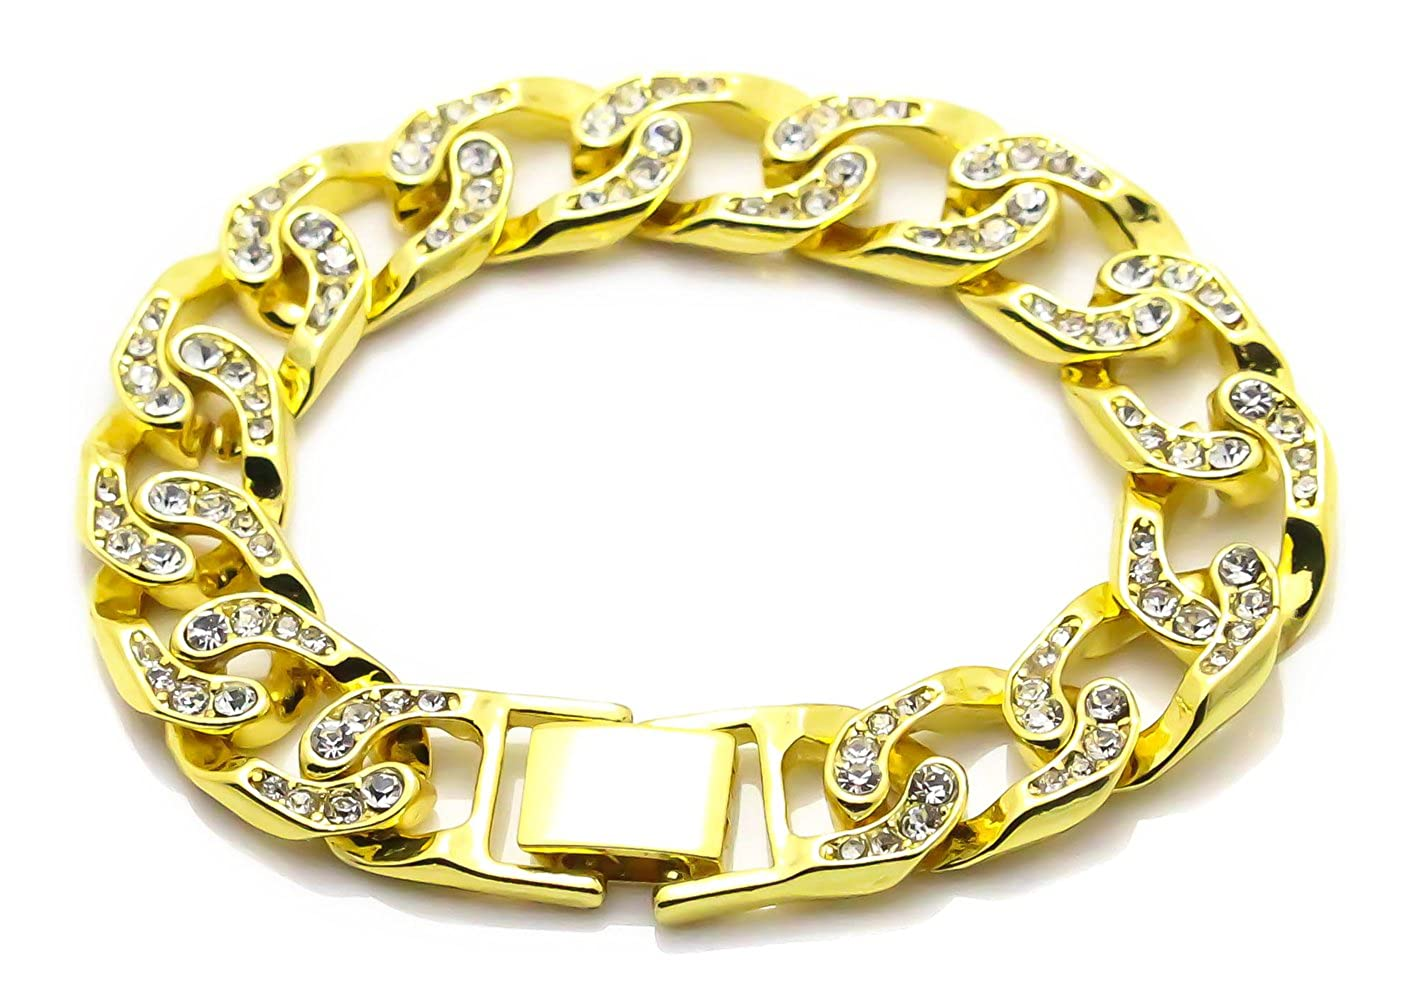 Xusamss Hip Hop Stainless Steel Crystal Wristband Bangle Chain Bracelet, 8.0inches JHKsz766-Gold